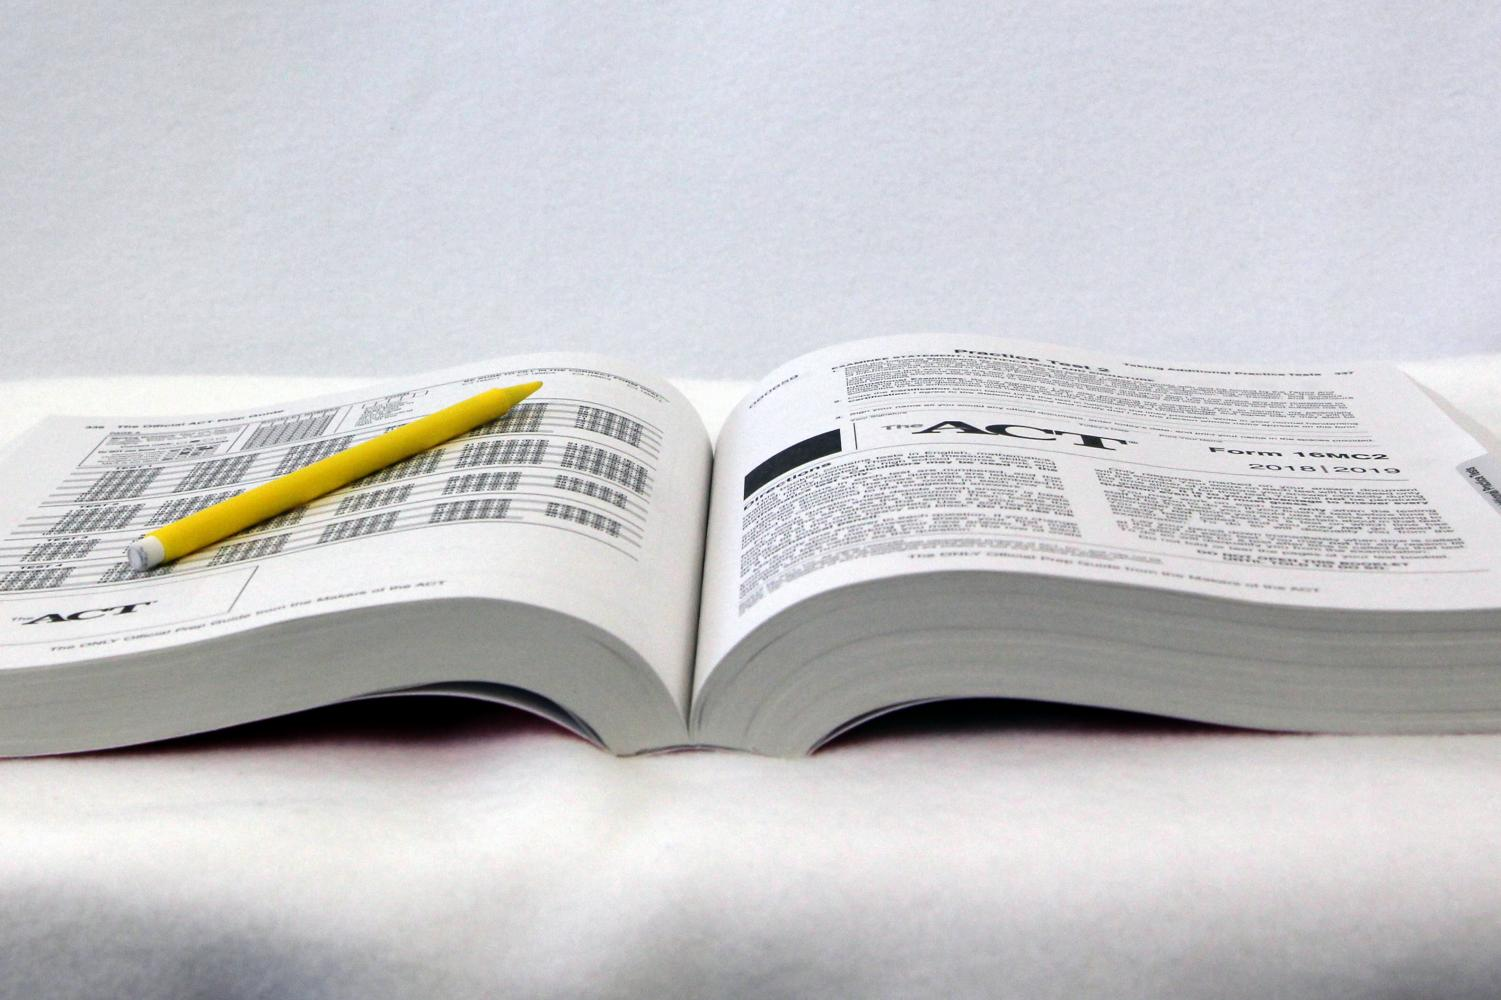 The ACT is a national standardized test taken by students in high school.